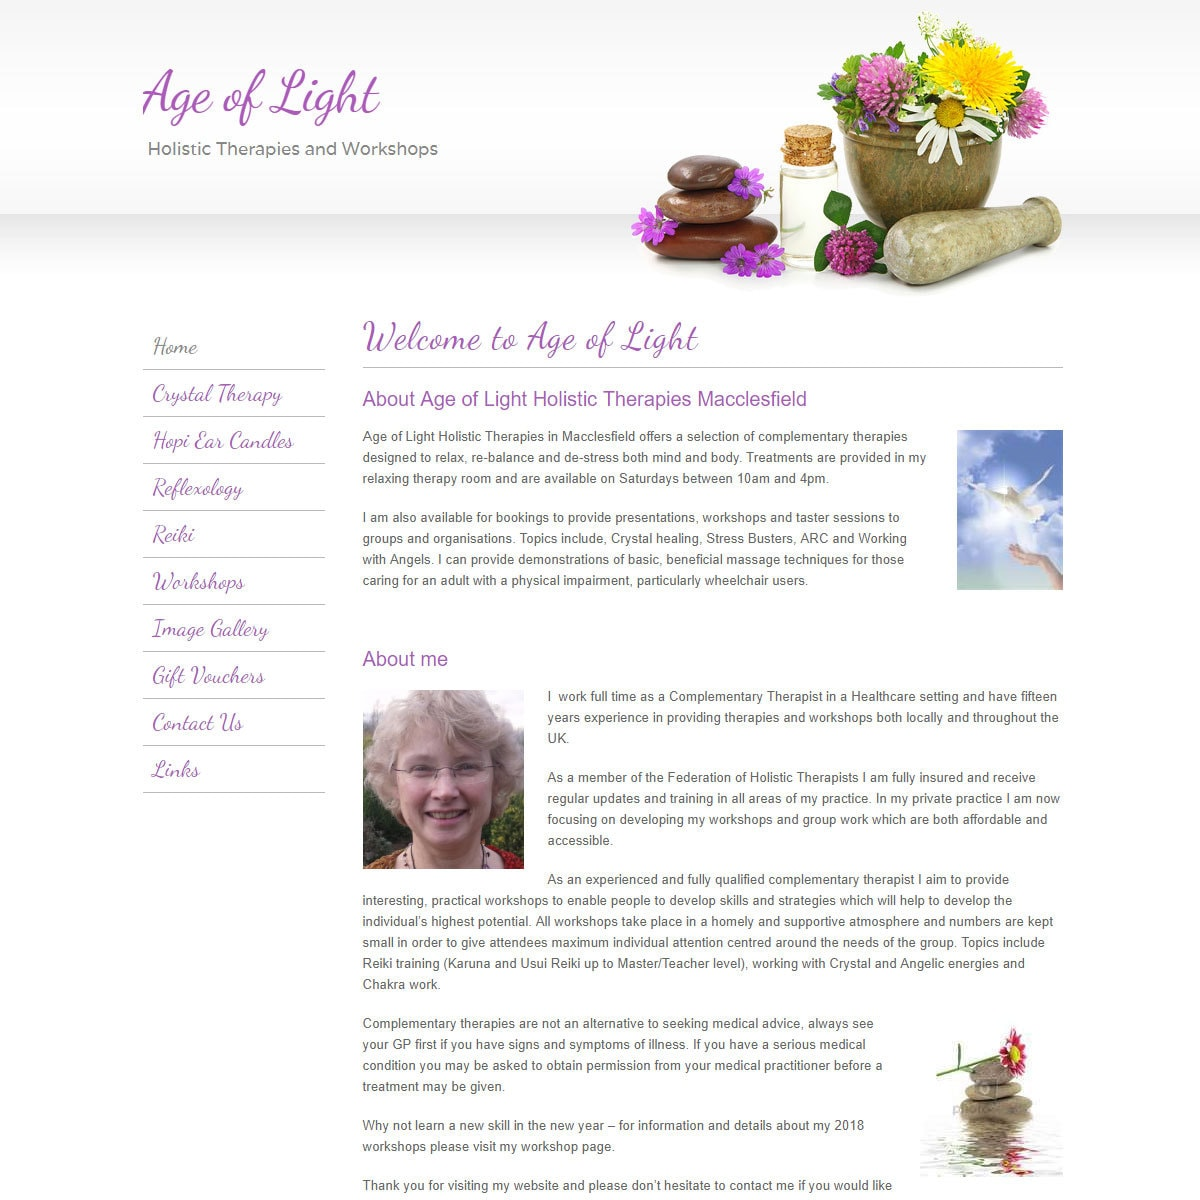 ageoflightholistictherapies